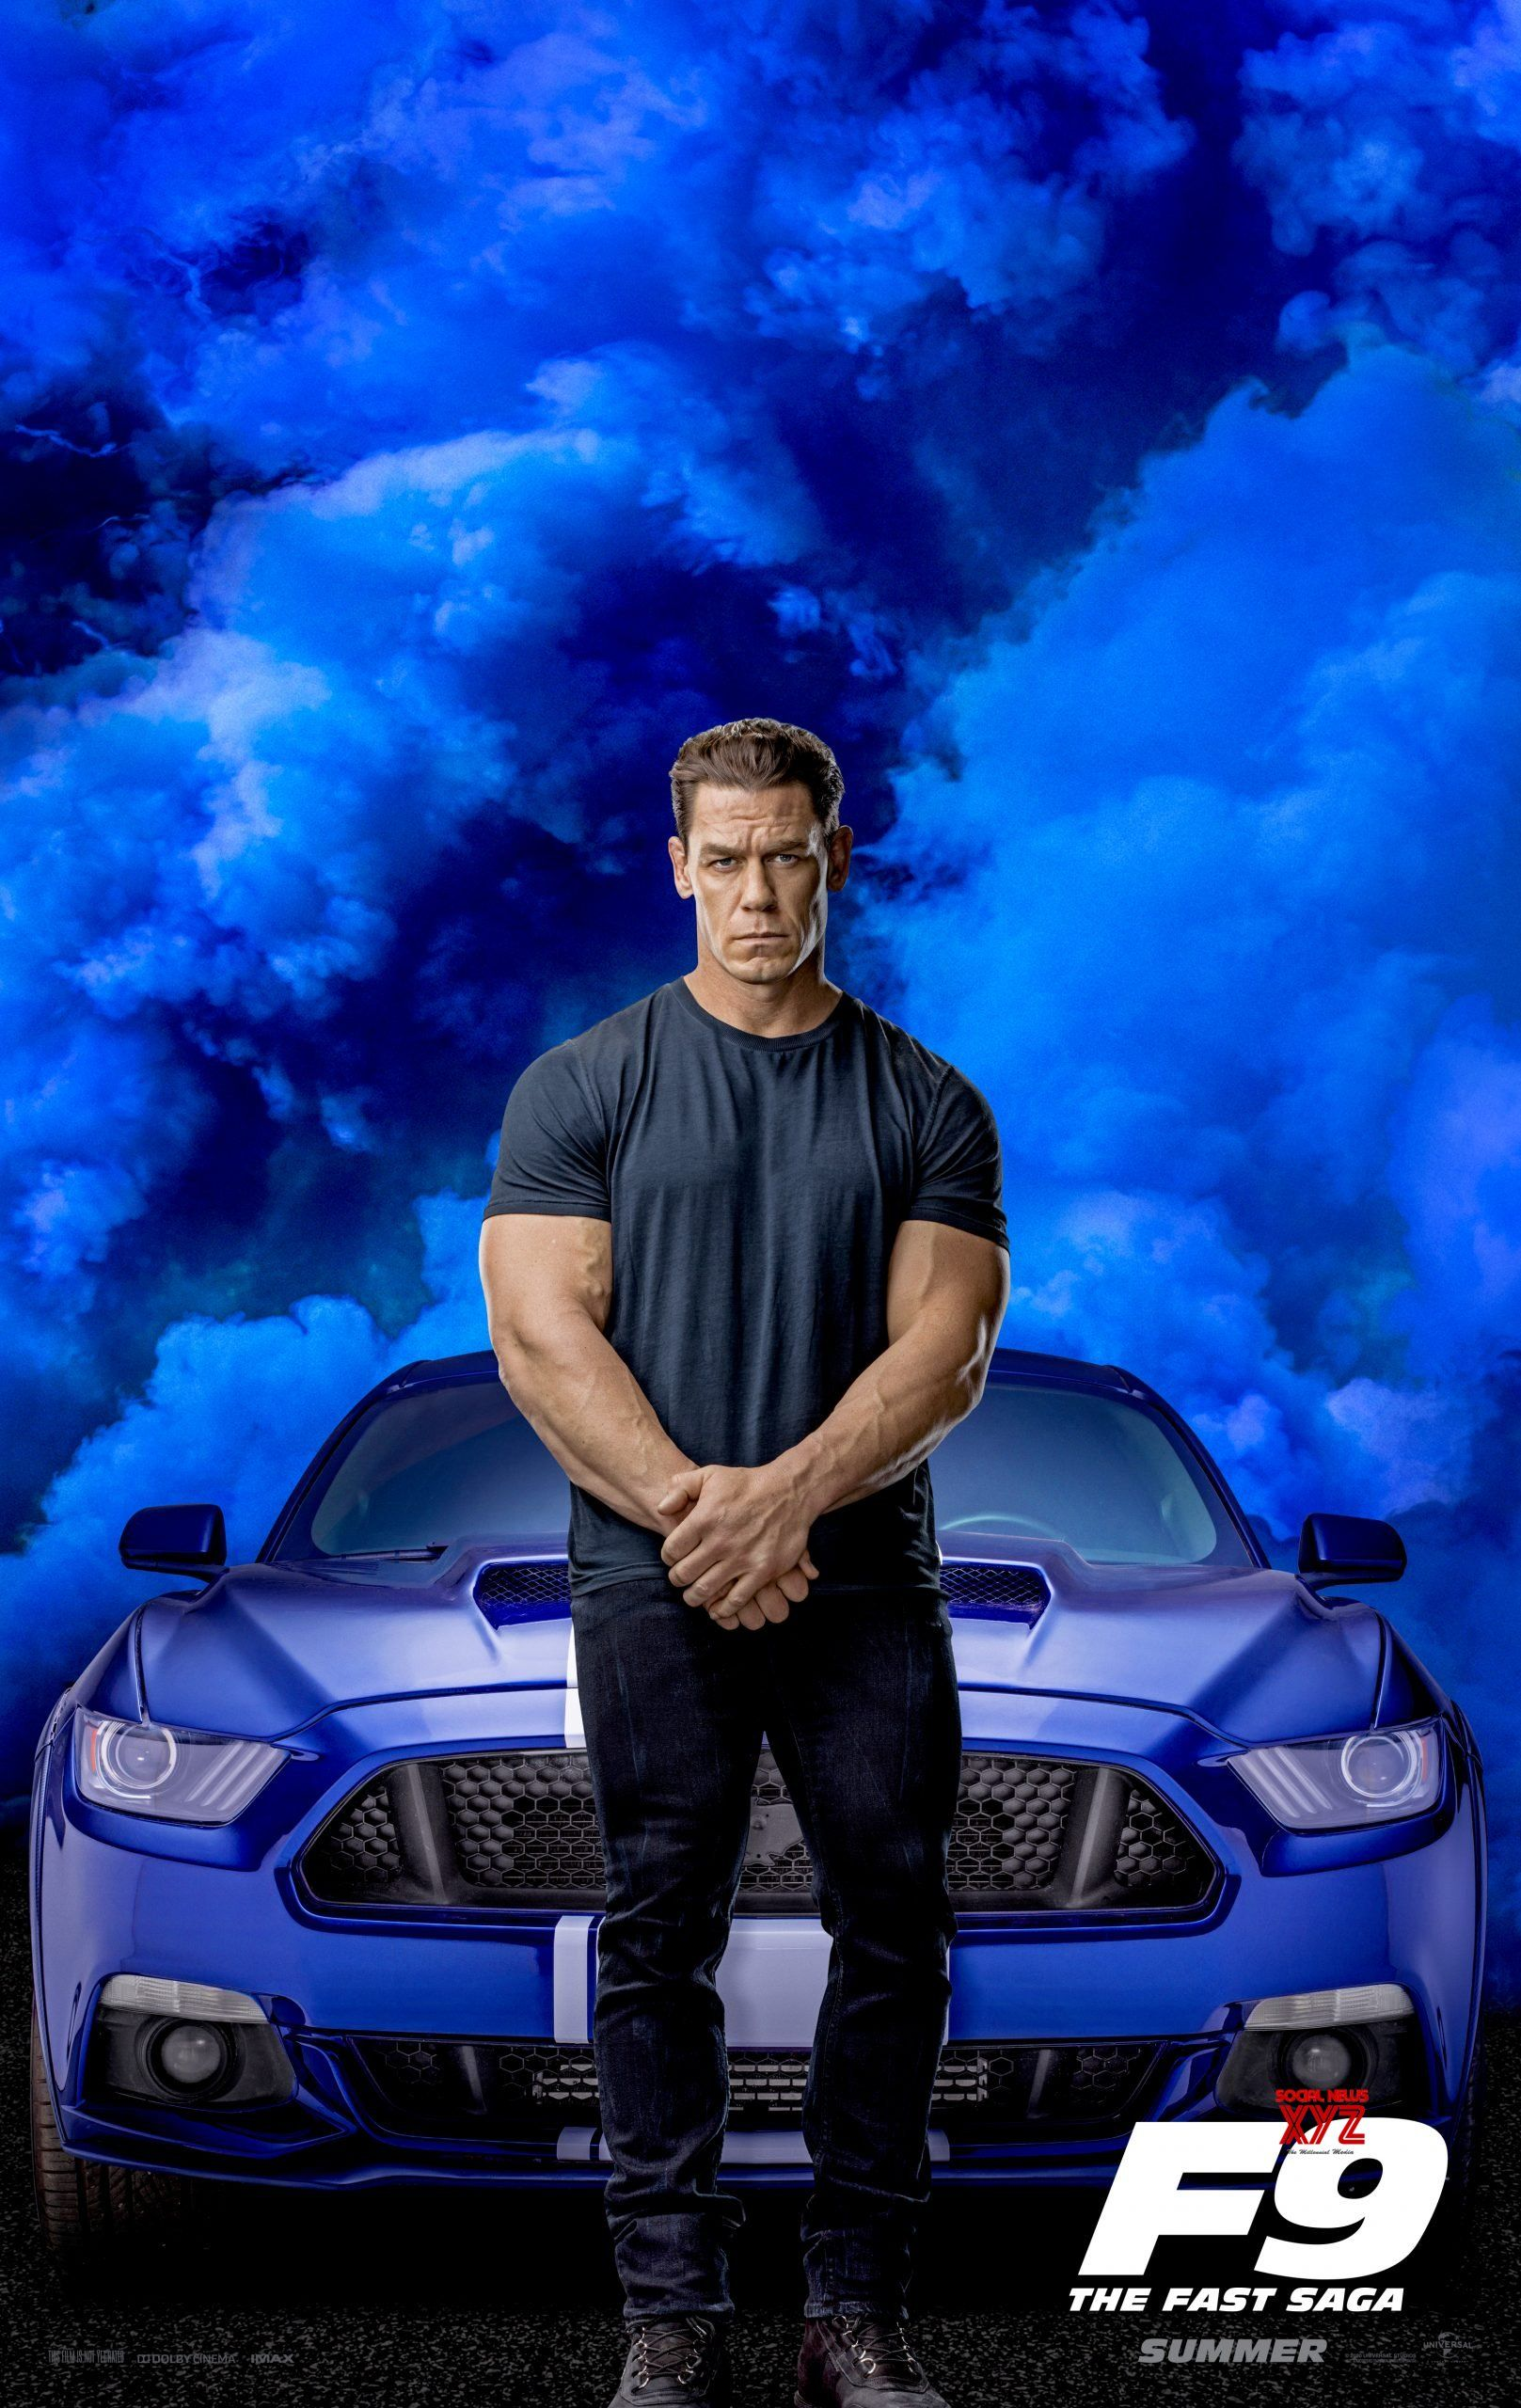 Socialnews Xyz On Twitter In 2021 Movie Fast And Furious Fast And Furious John Cena